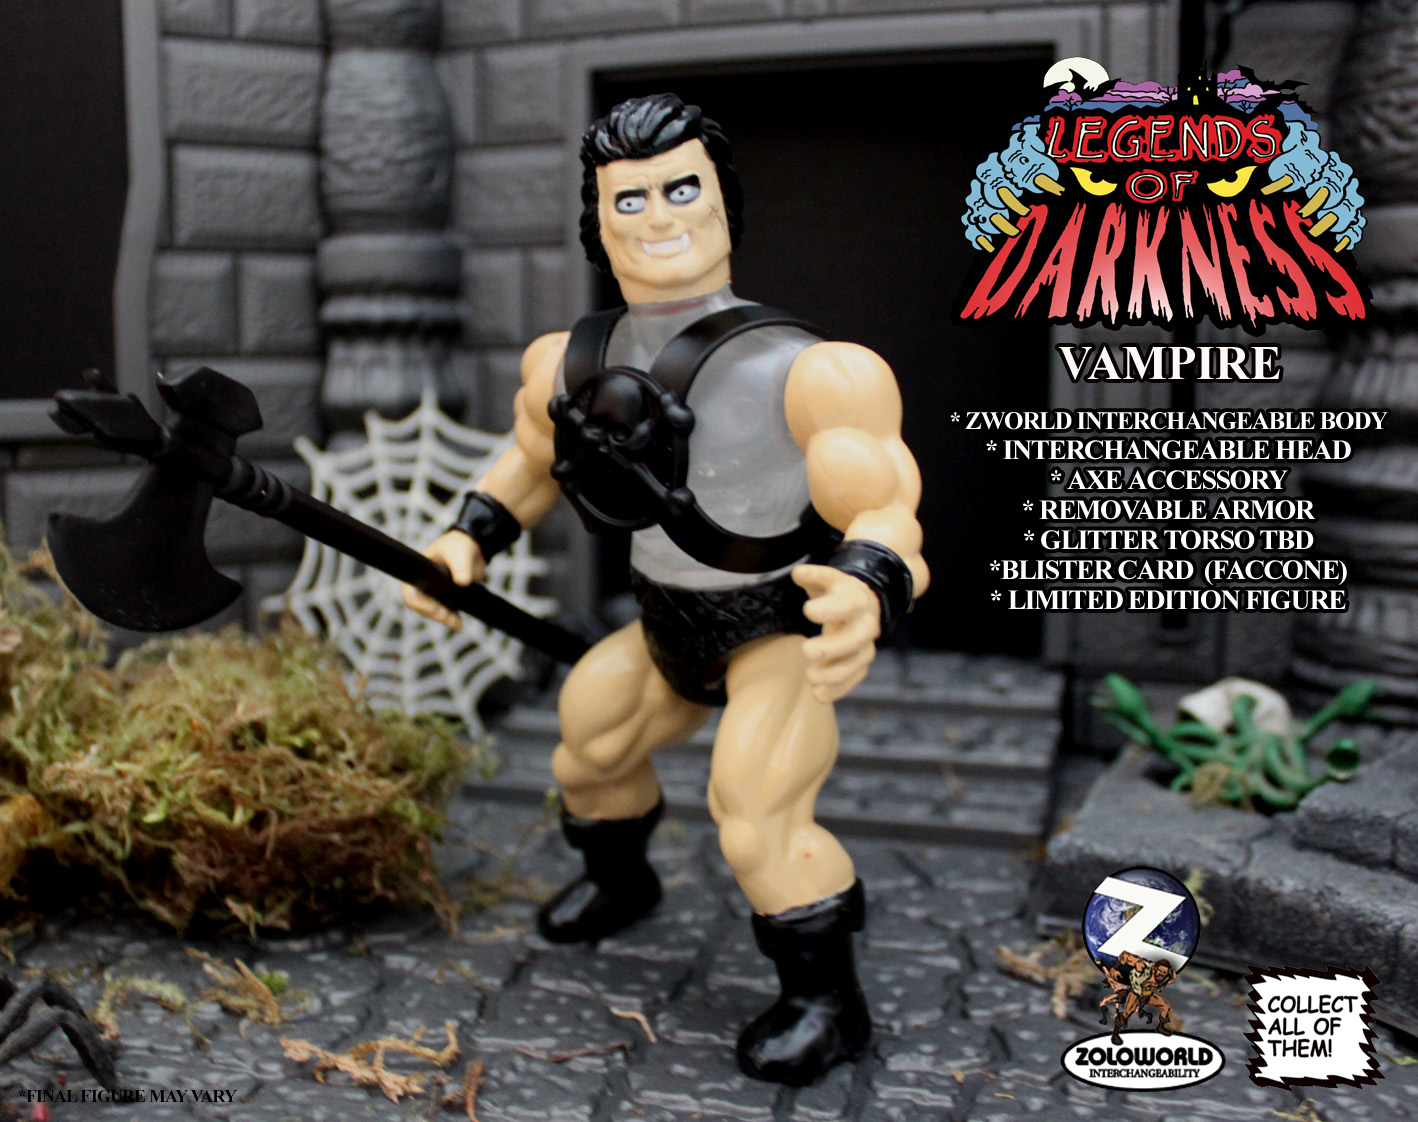 LEGENDS OF DARKNESS VAMPIRE MONSTER FIGURE